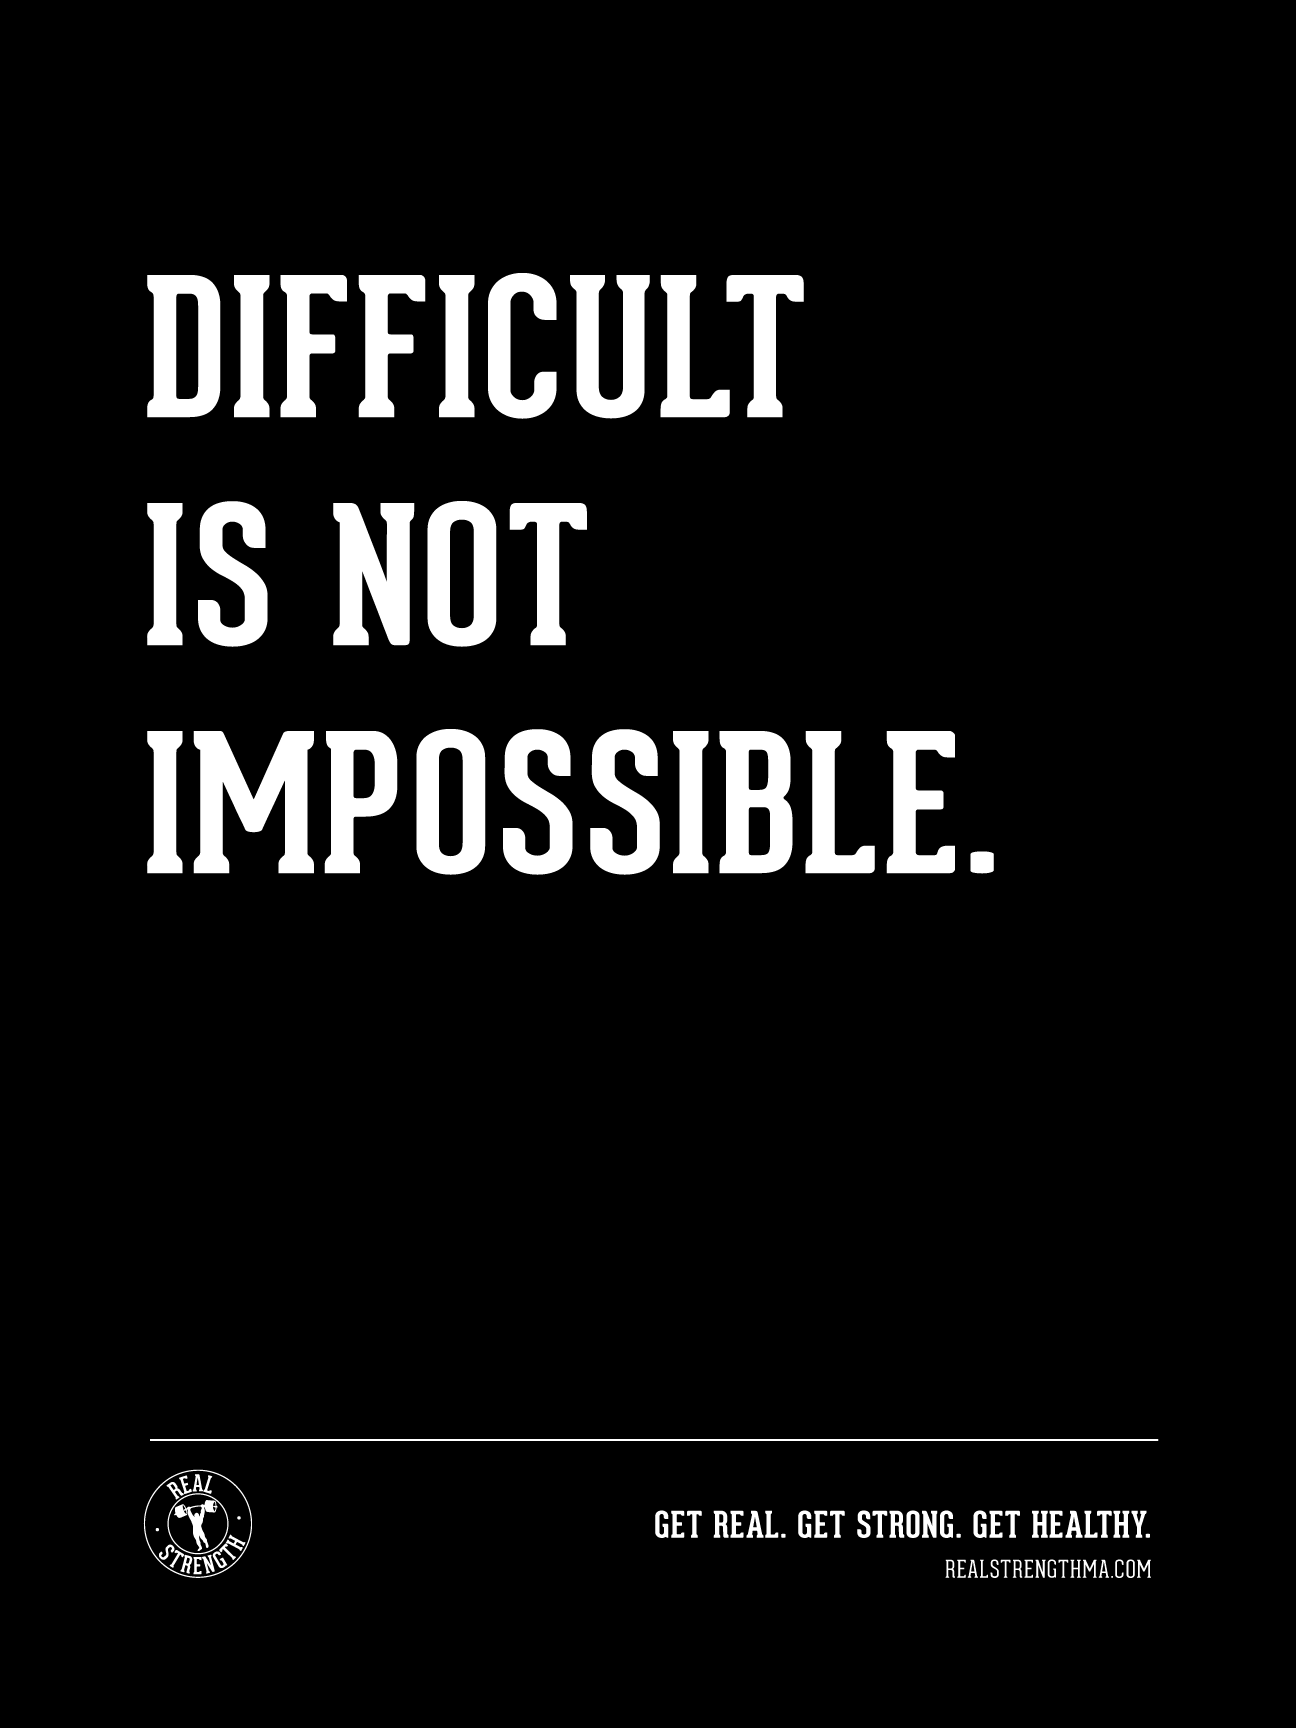 Difficult is not impossible.